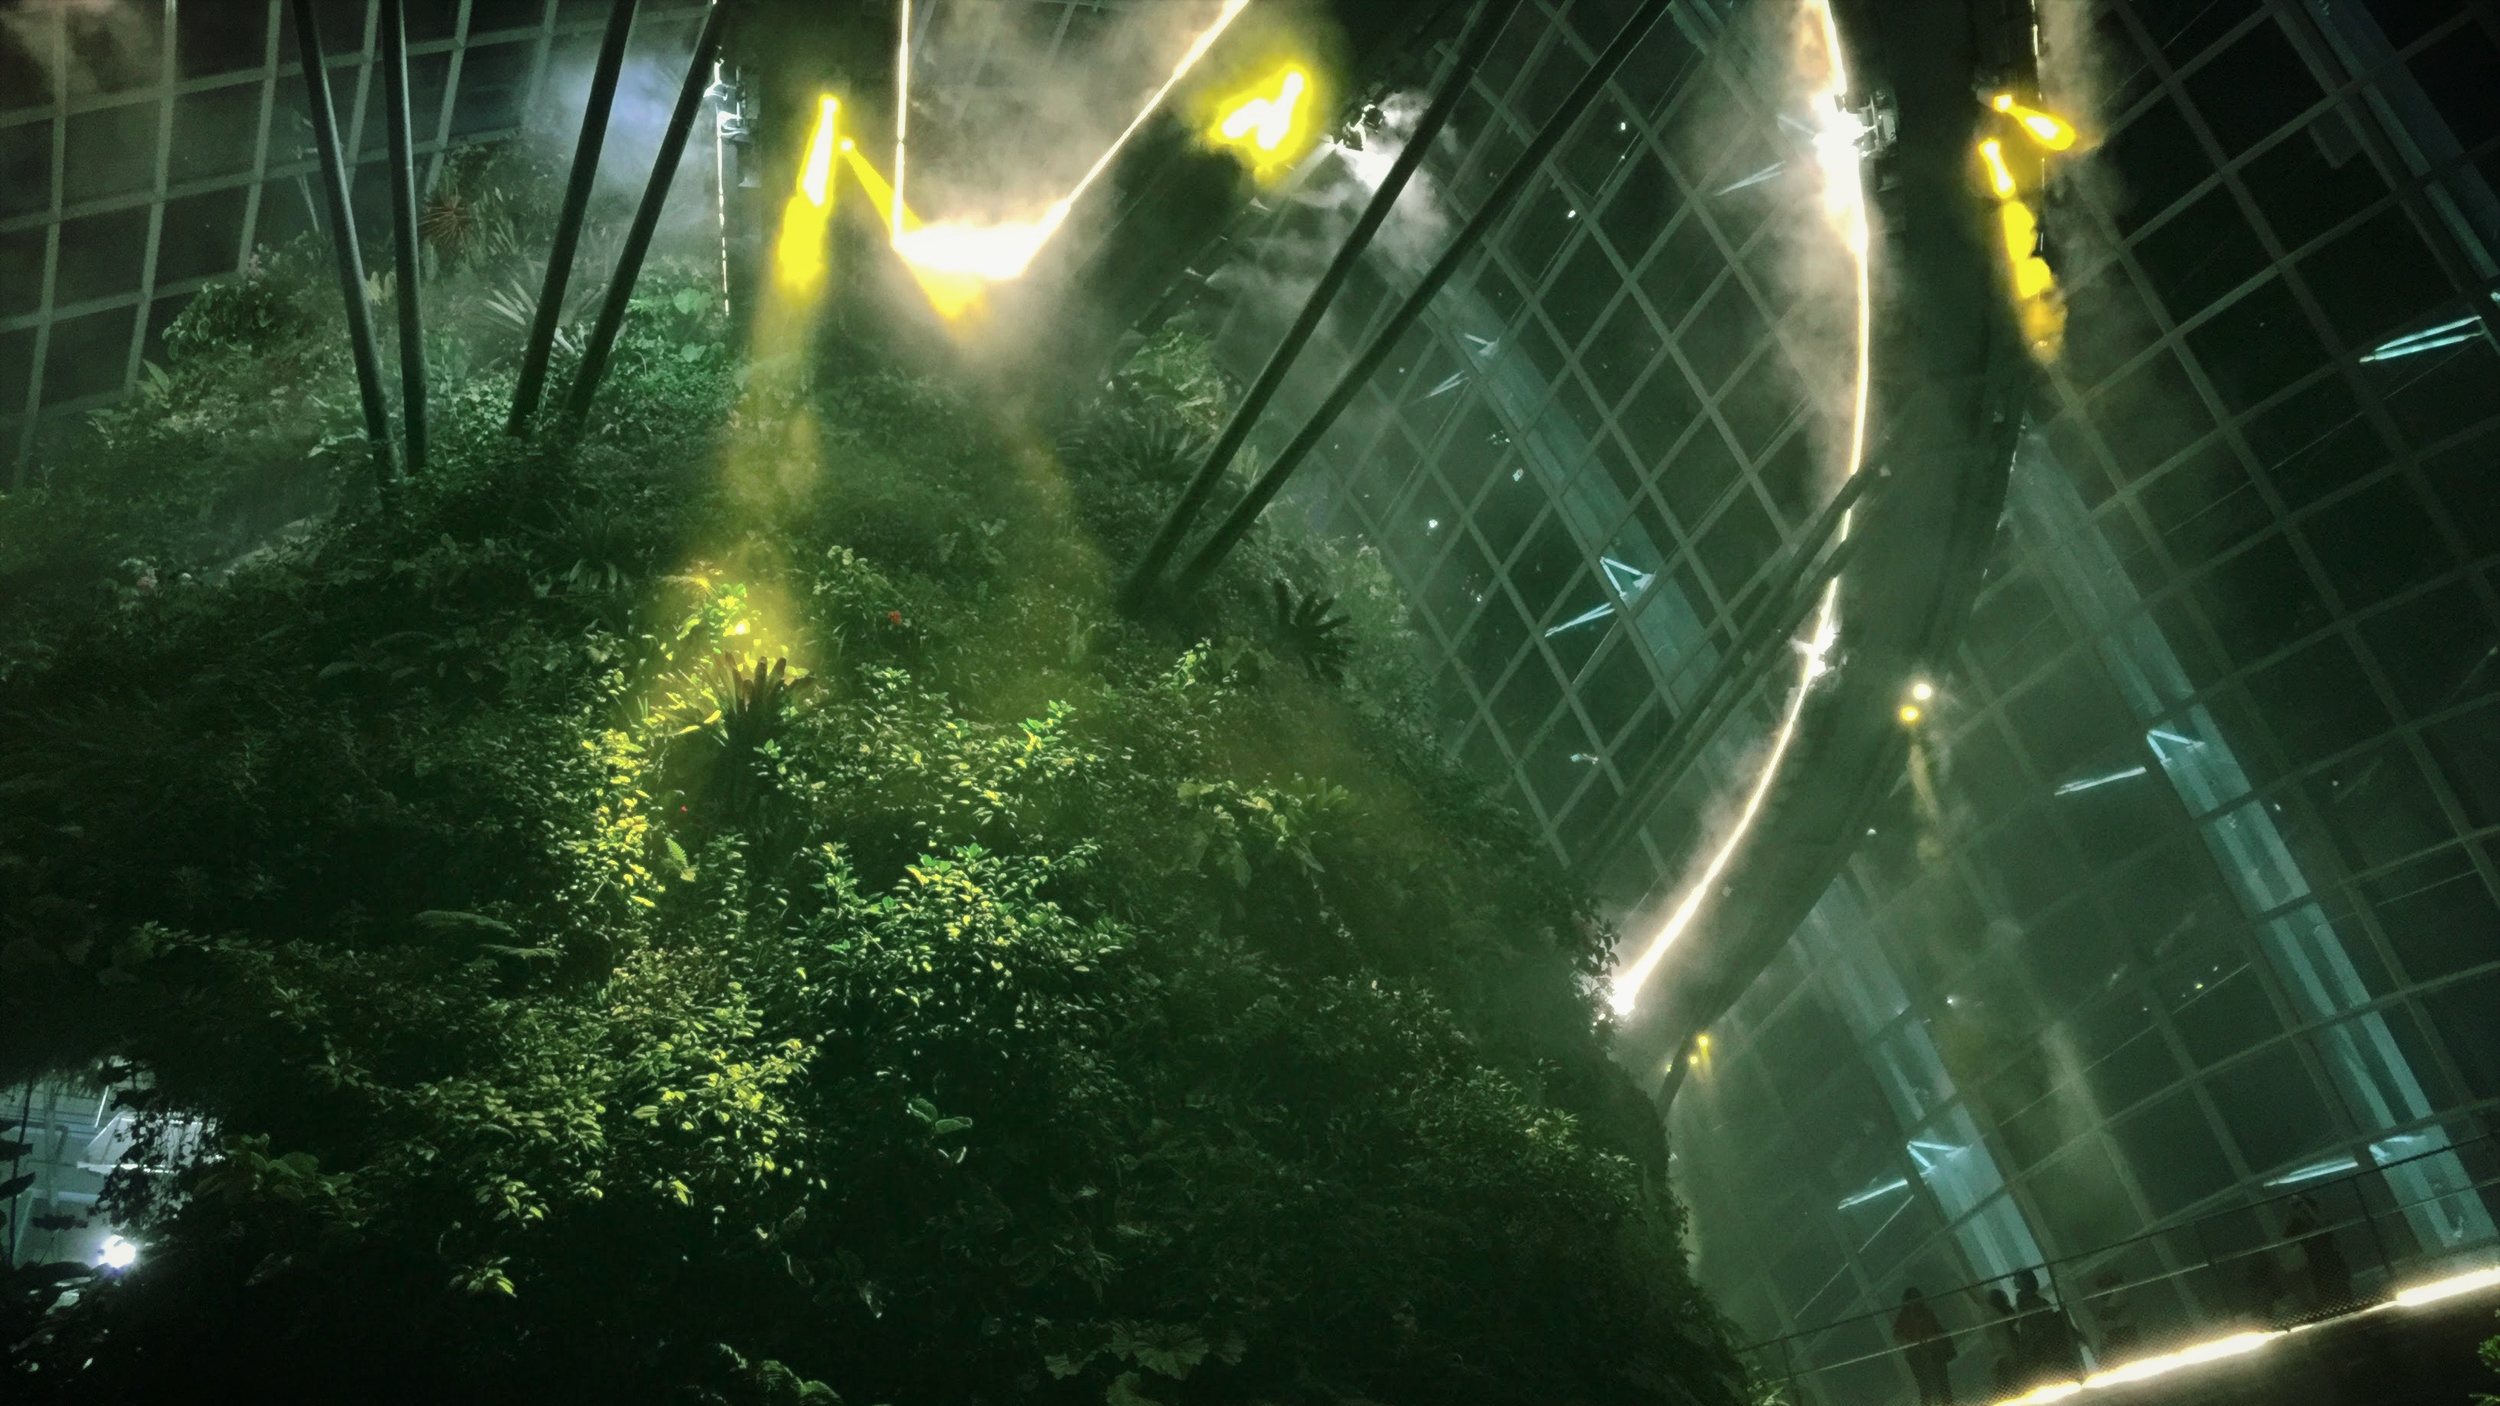 A snap from Gardens by the Bay in Singapore - to me, it truly felt like a forest in a spaceship from the future.